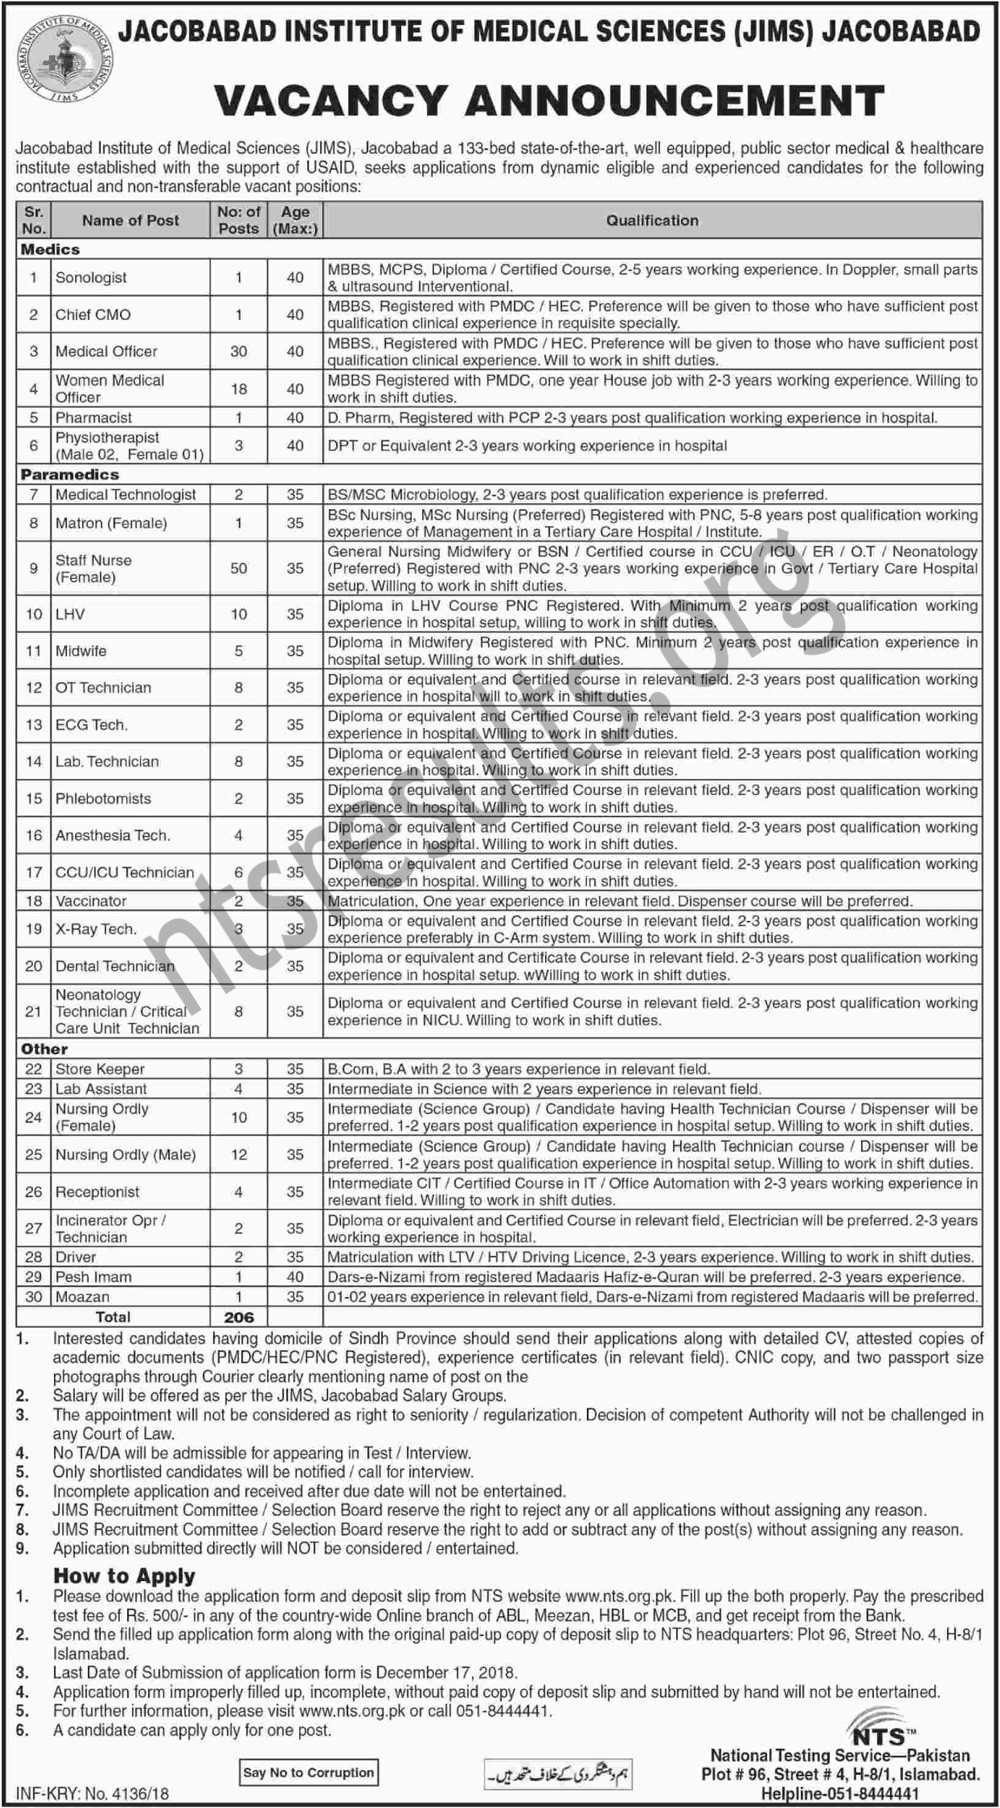 Jacobabad Institute of Medical Sciences JIMS Jobs Via NTS